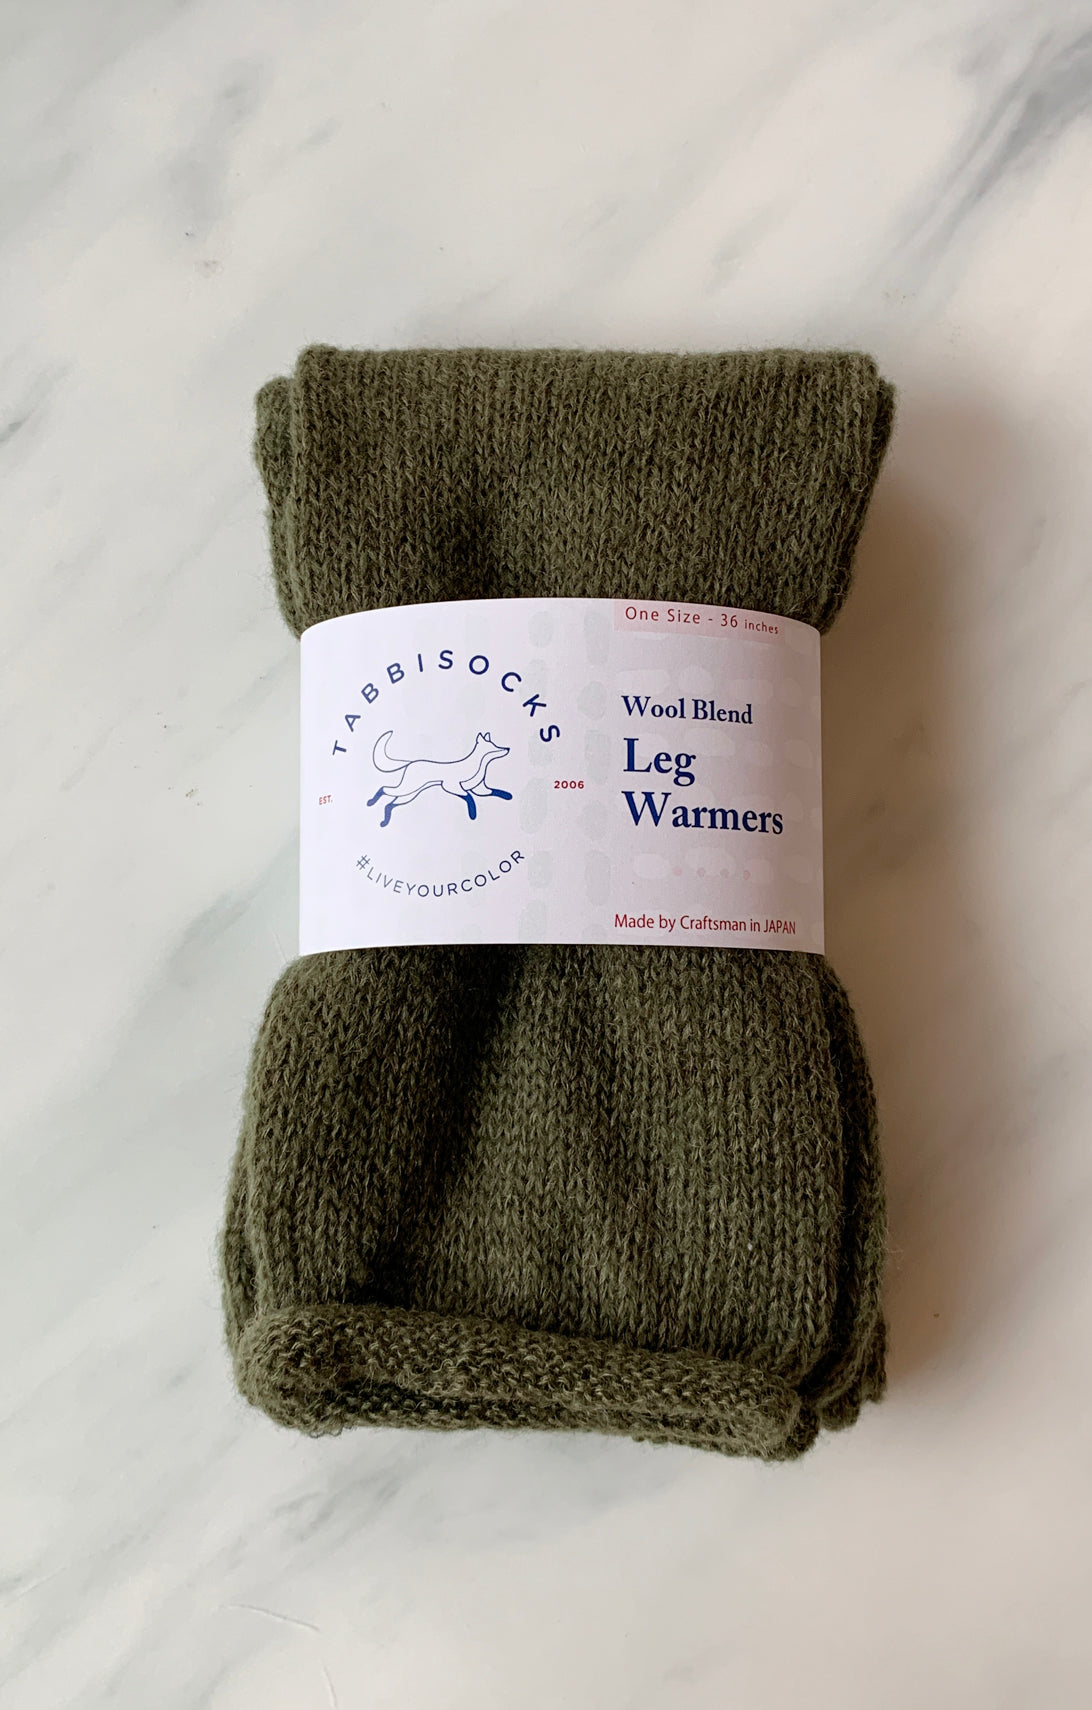 WOOL BLEND LUXURY KNIT ARM WARMERS / LEG WARMERS